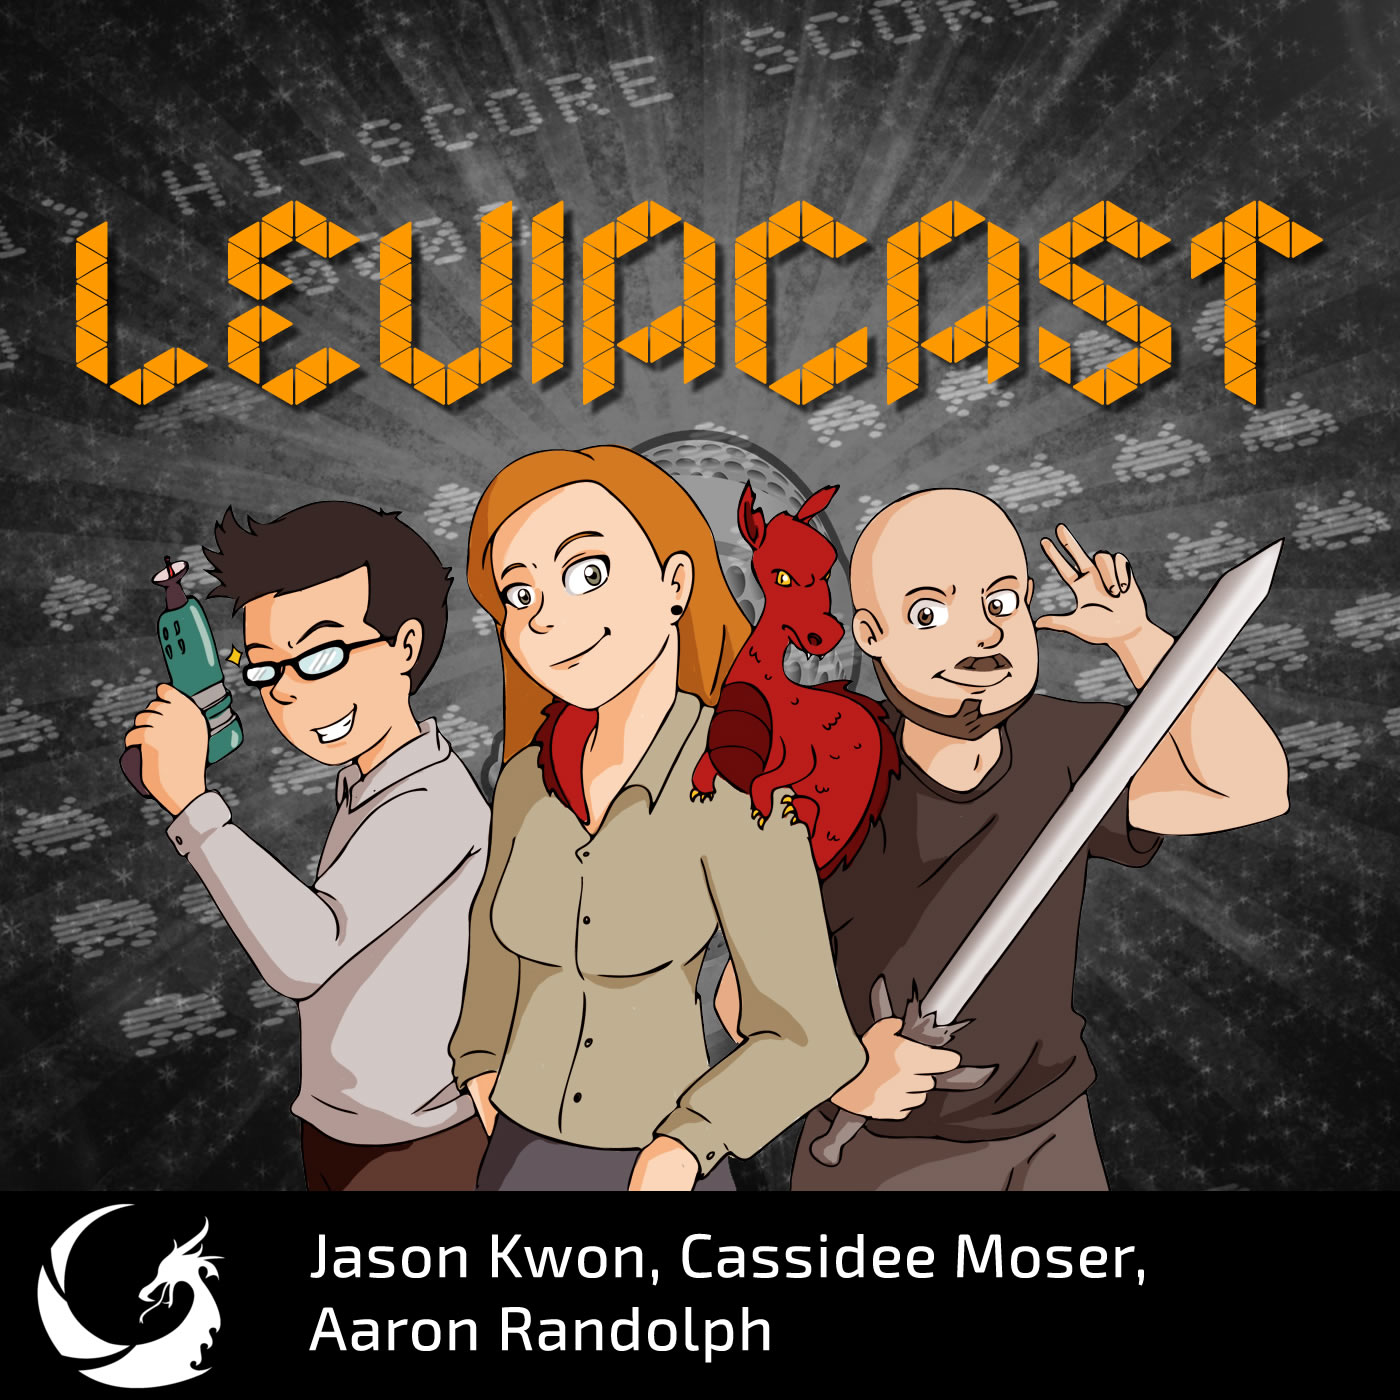 Leviacast Ep. 70: The Most Controversial RPG Discussion You'll Hear This Week (Feat. Stealth)